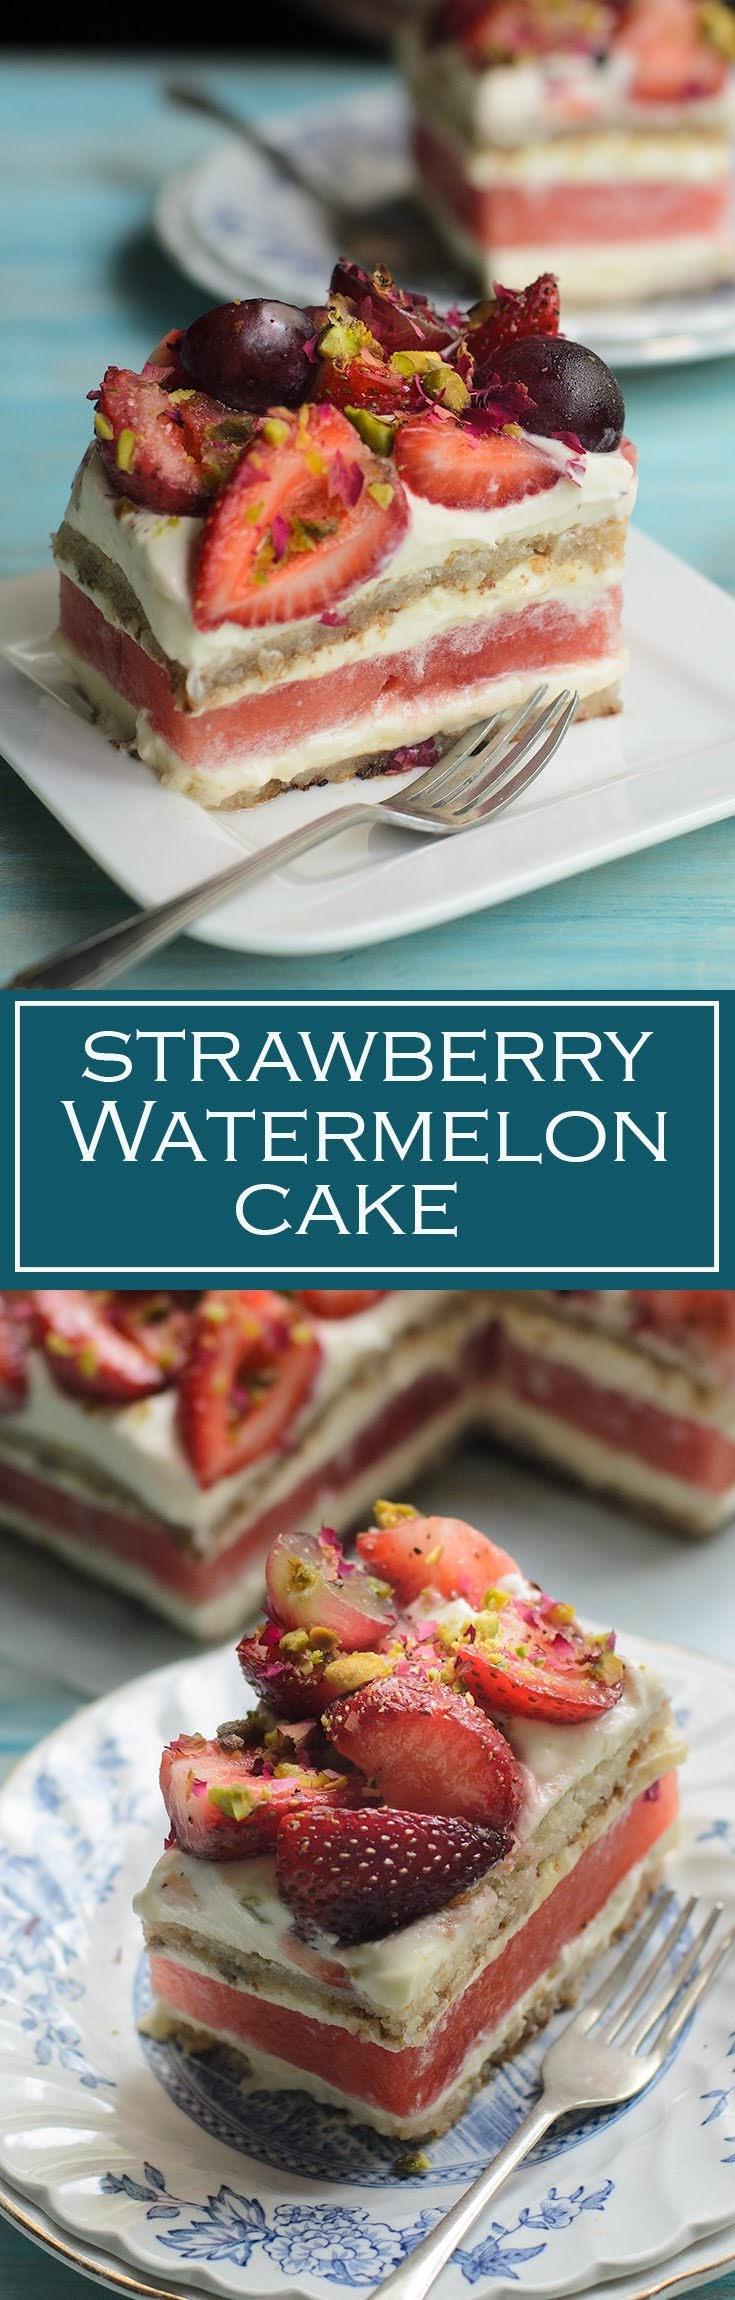 Sydney's Black Star Pastry best ever Watermelon and Strawberry Cake. Heavenly taste of rosewater cream, delicious strawberry and watermelon cake.